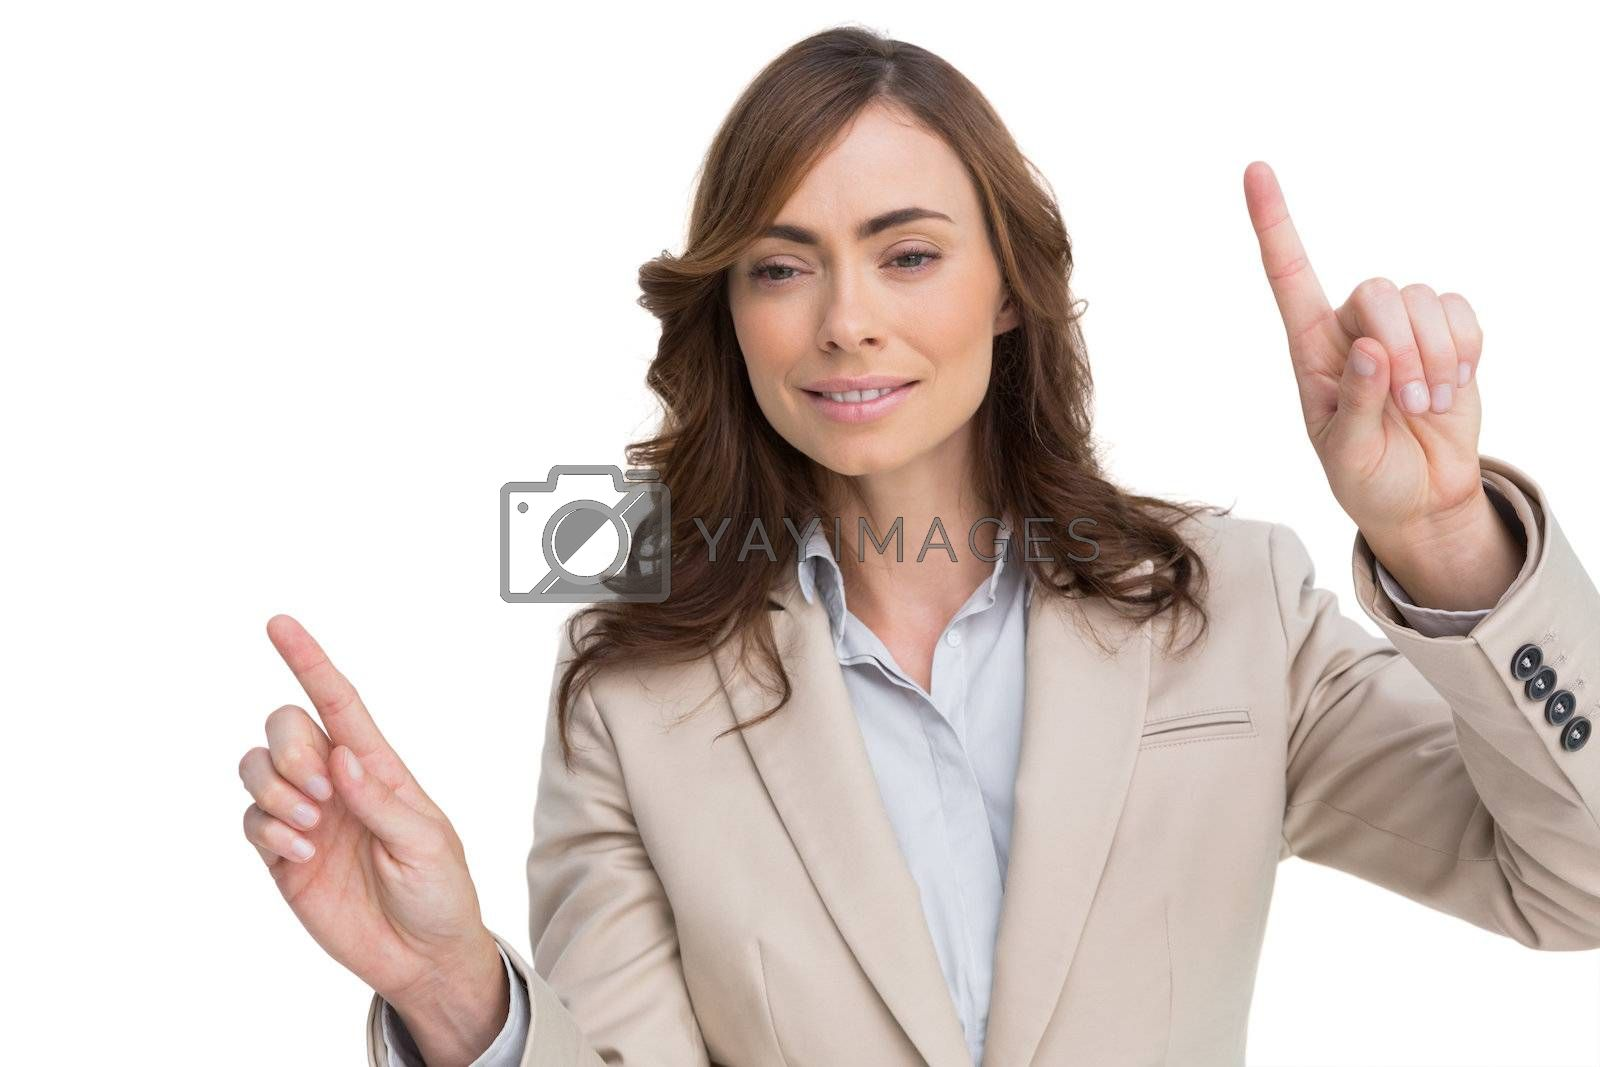 Businesswoman posing with fingers up by Wavebreakmedia